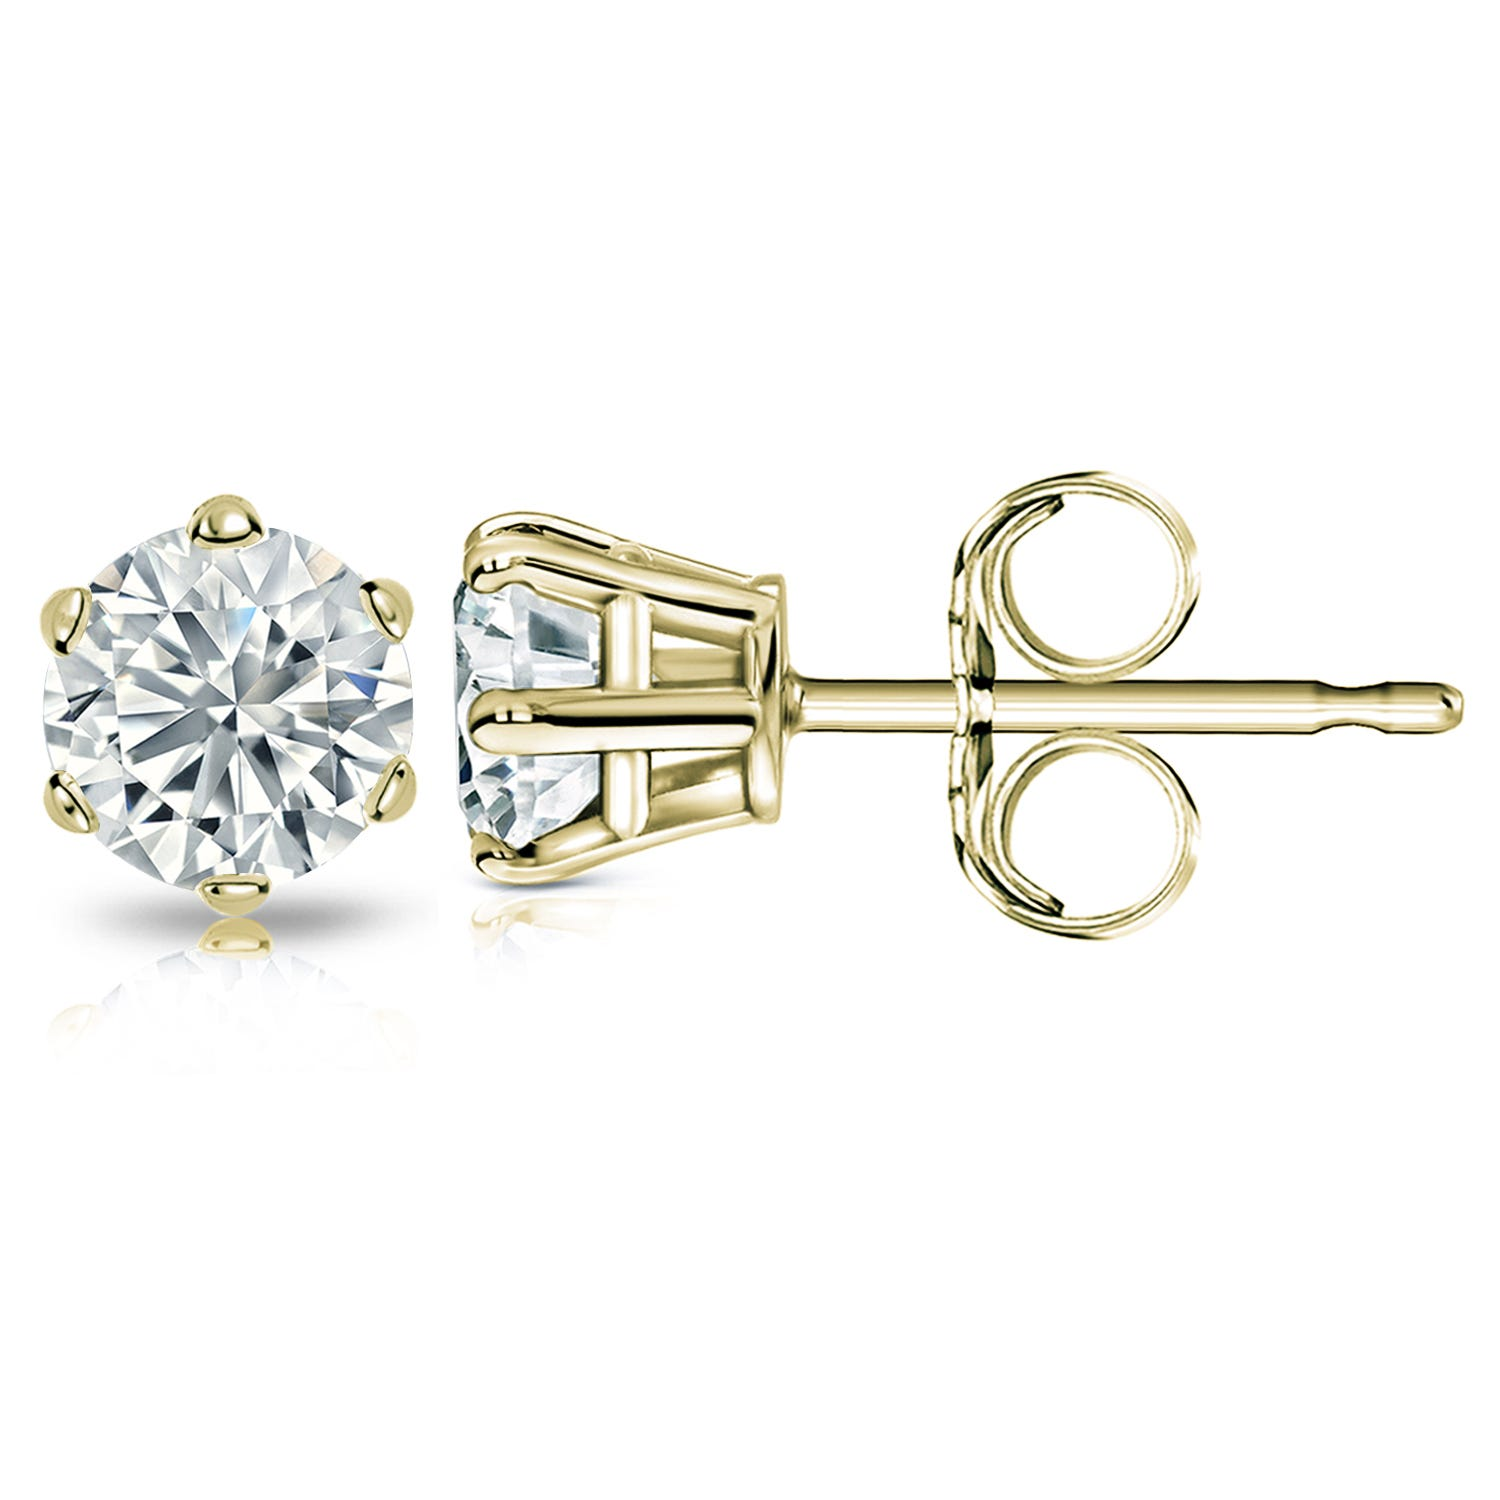 Round Diamond 2ctw. (IJ-I2) Solitaire Stud 6-Prong Earrings in 14K Yellow Gold